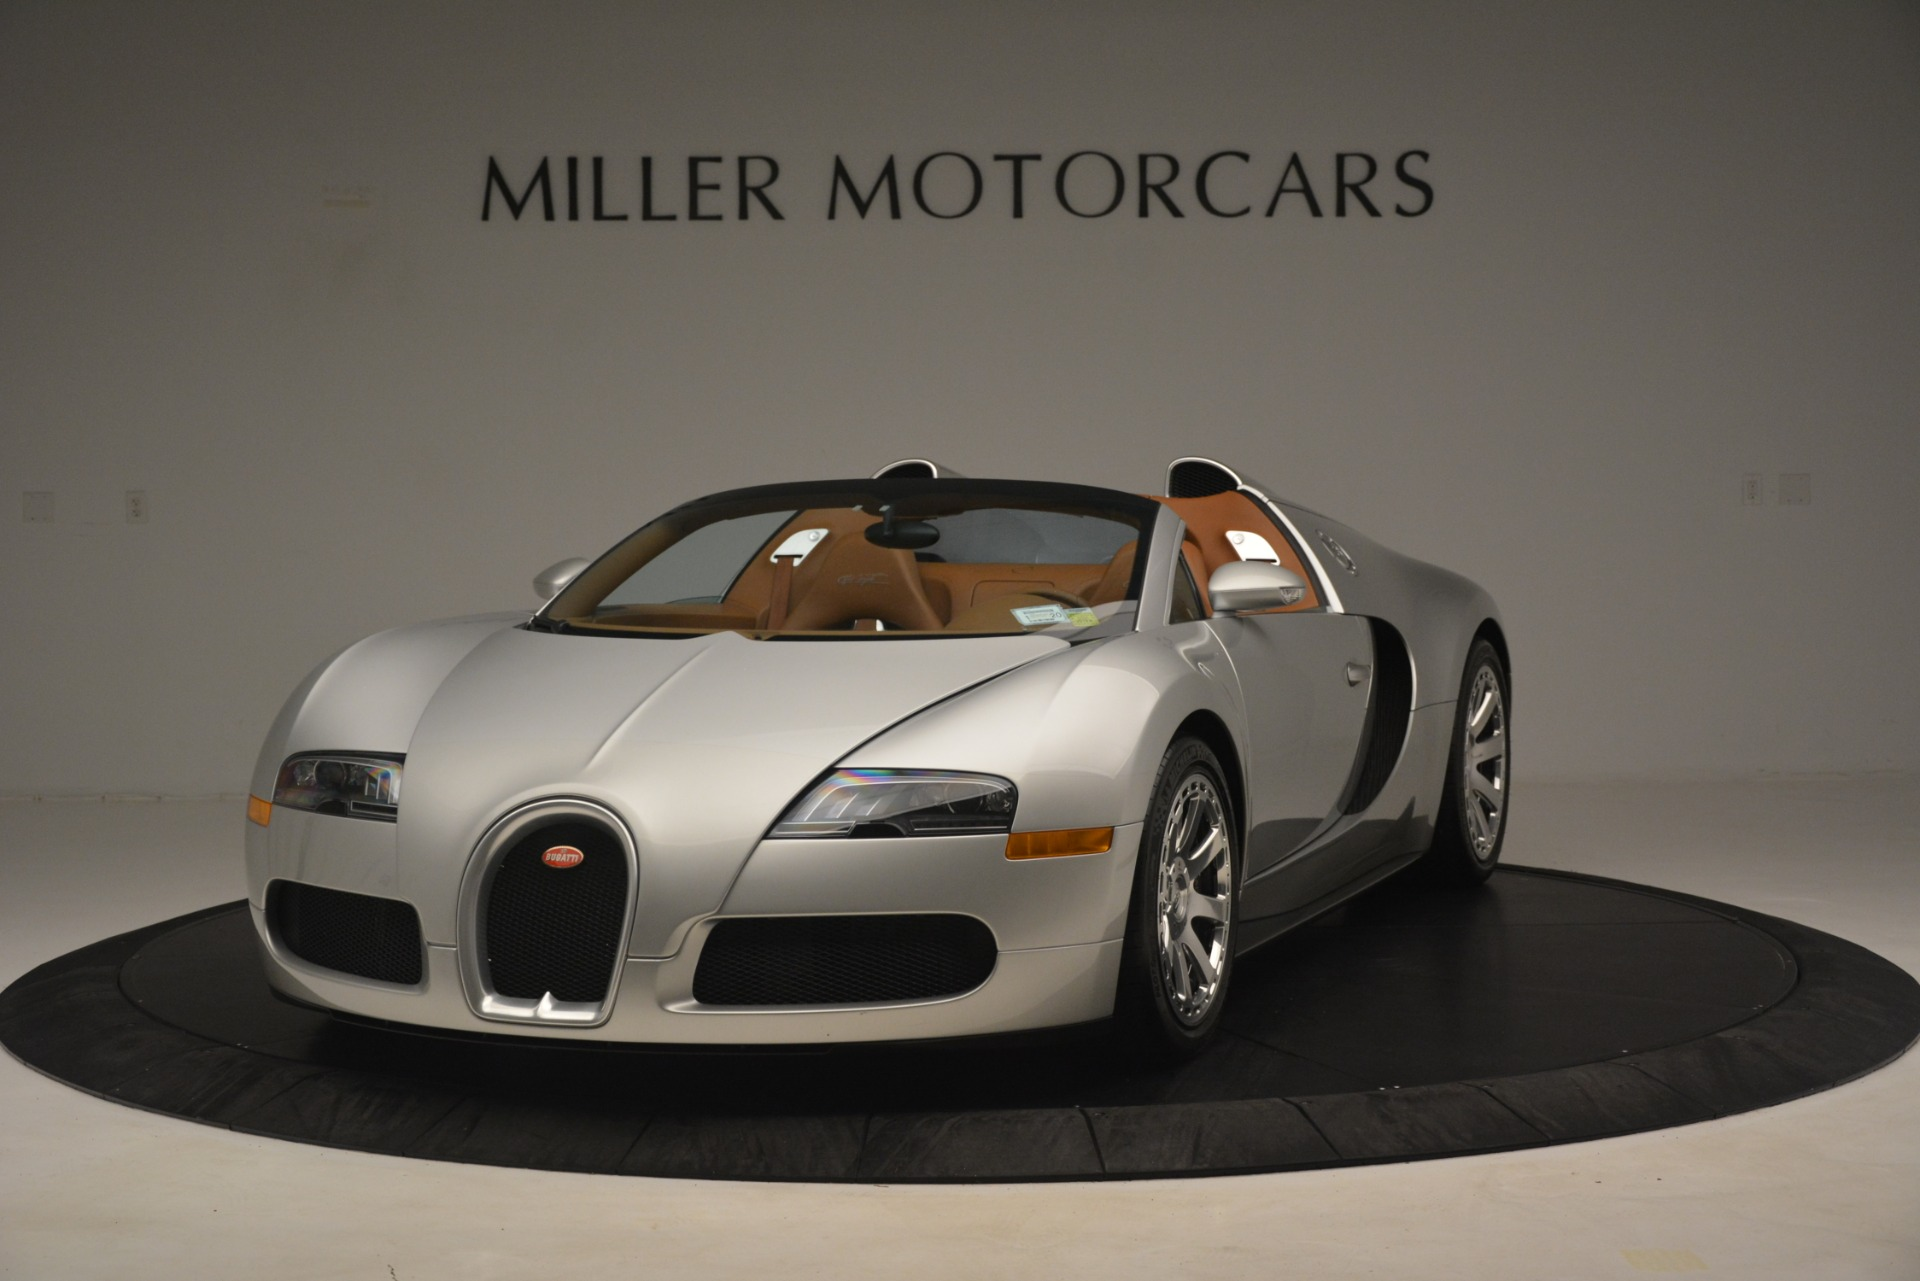 Used 2010 Bugatti Veyron 16.4 Grand Sport for sale Sold at Maserati of Greenwich in Greenwich CT 06830 1